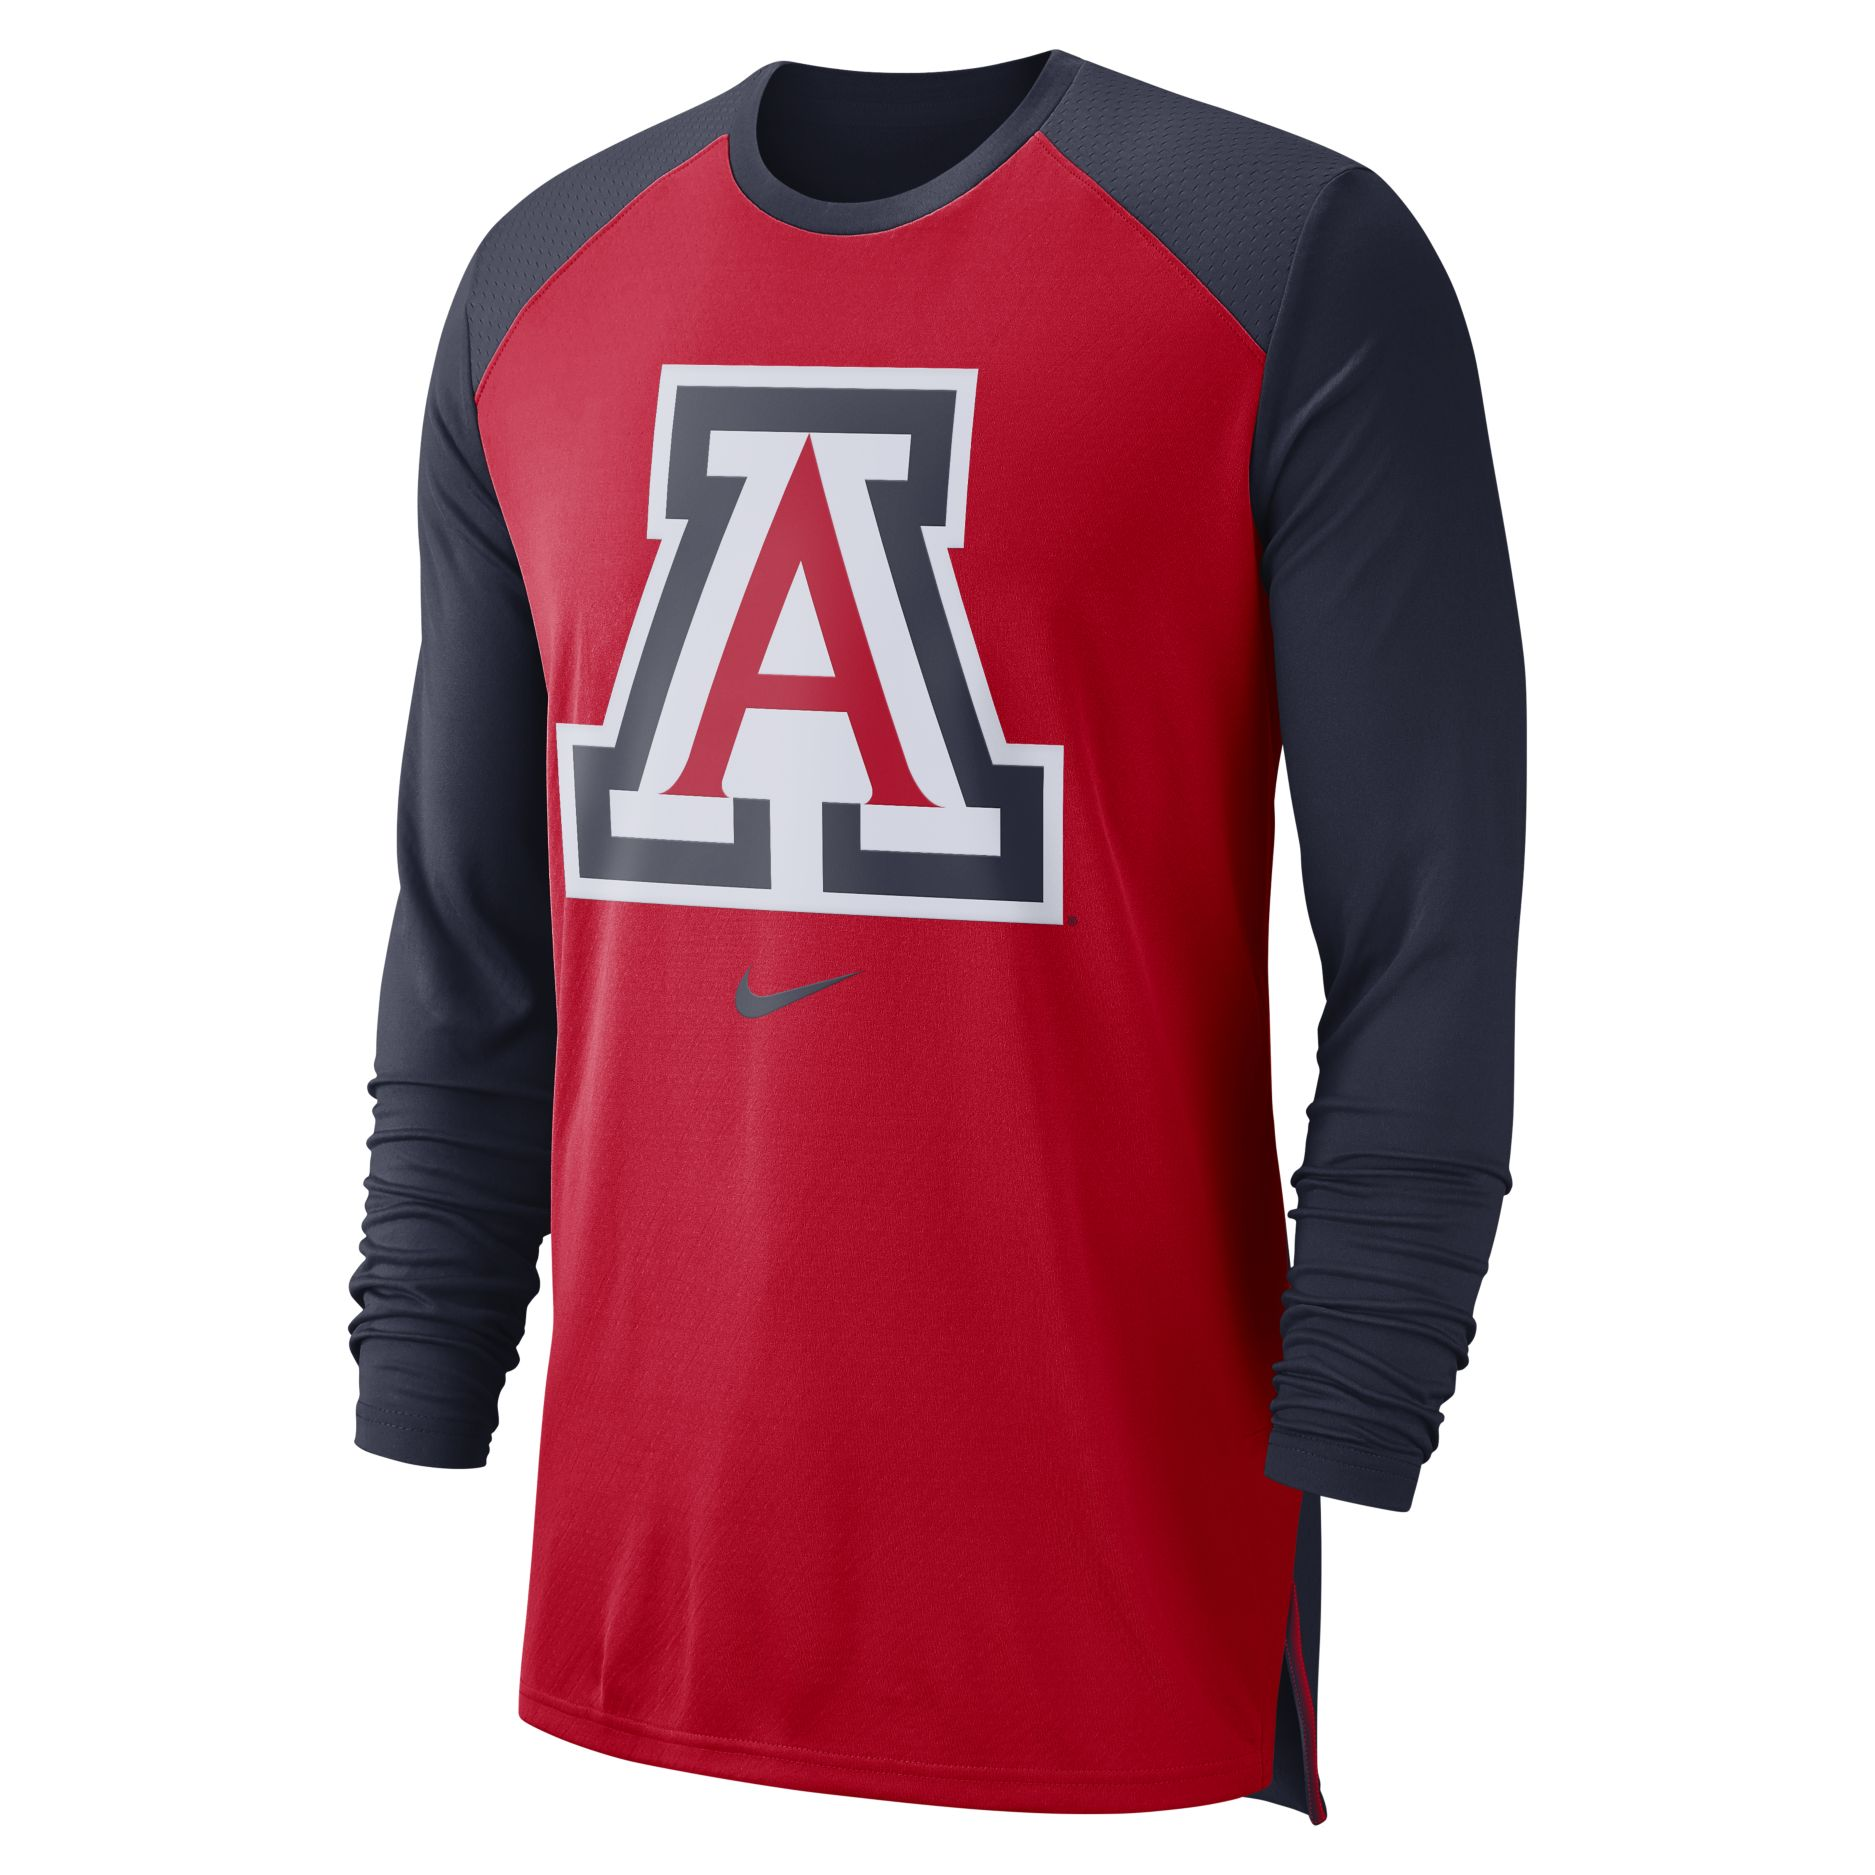 5a4a7ba30eb3 Image For Nike  Arizona On-Court Basketball Elite Performance Long Tee